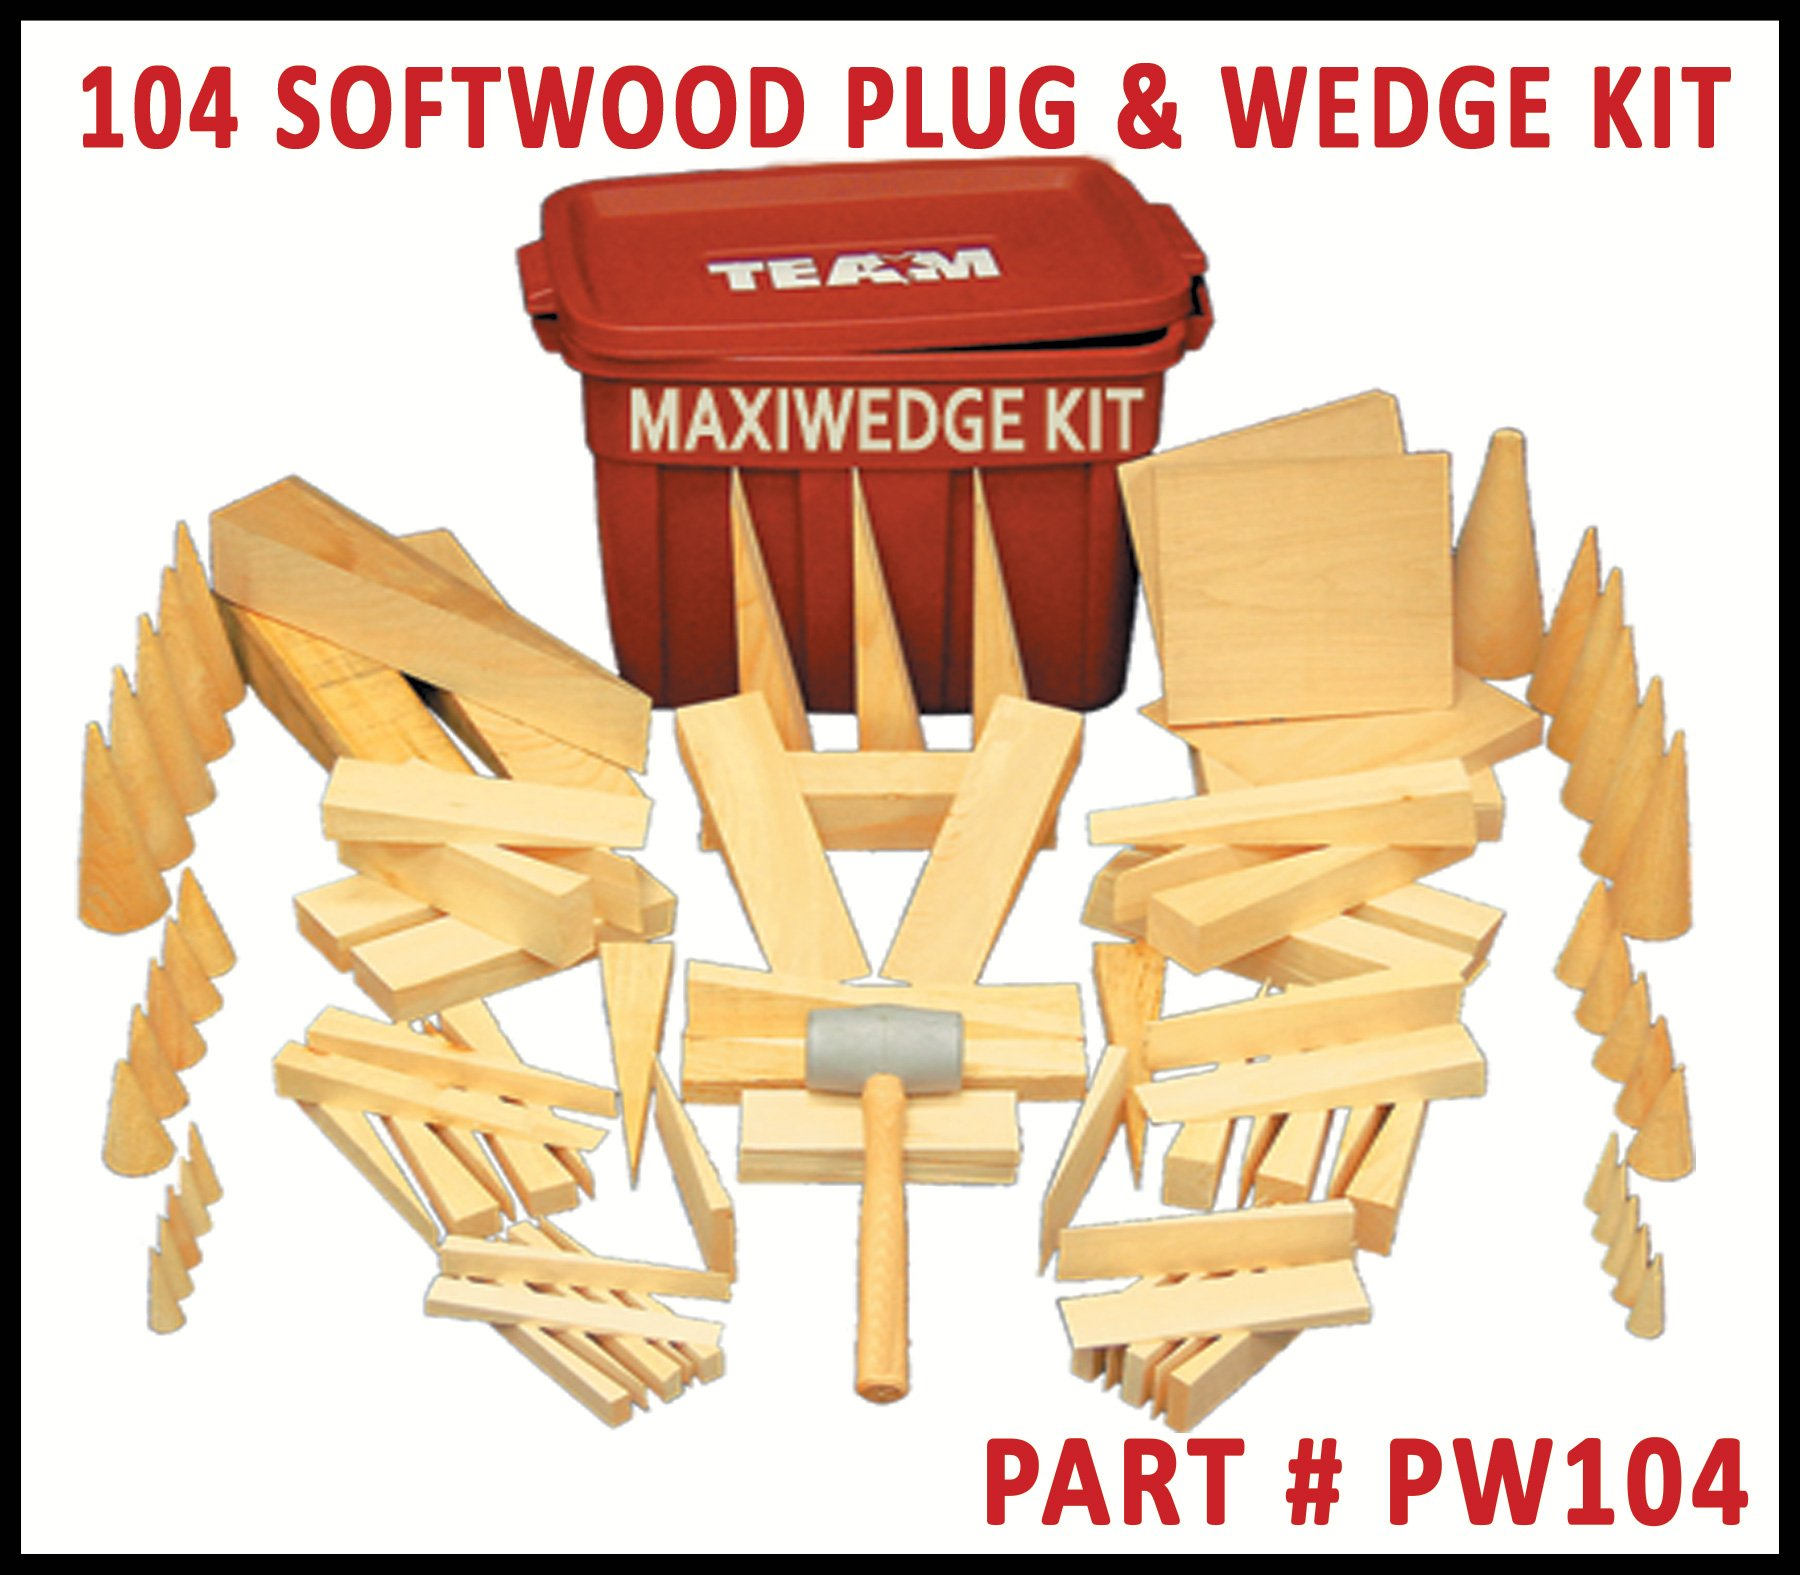 Maxiwedge Plug and Wedge Kit